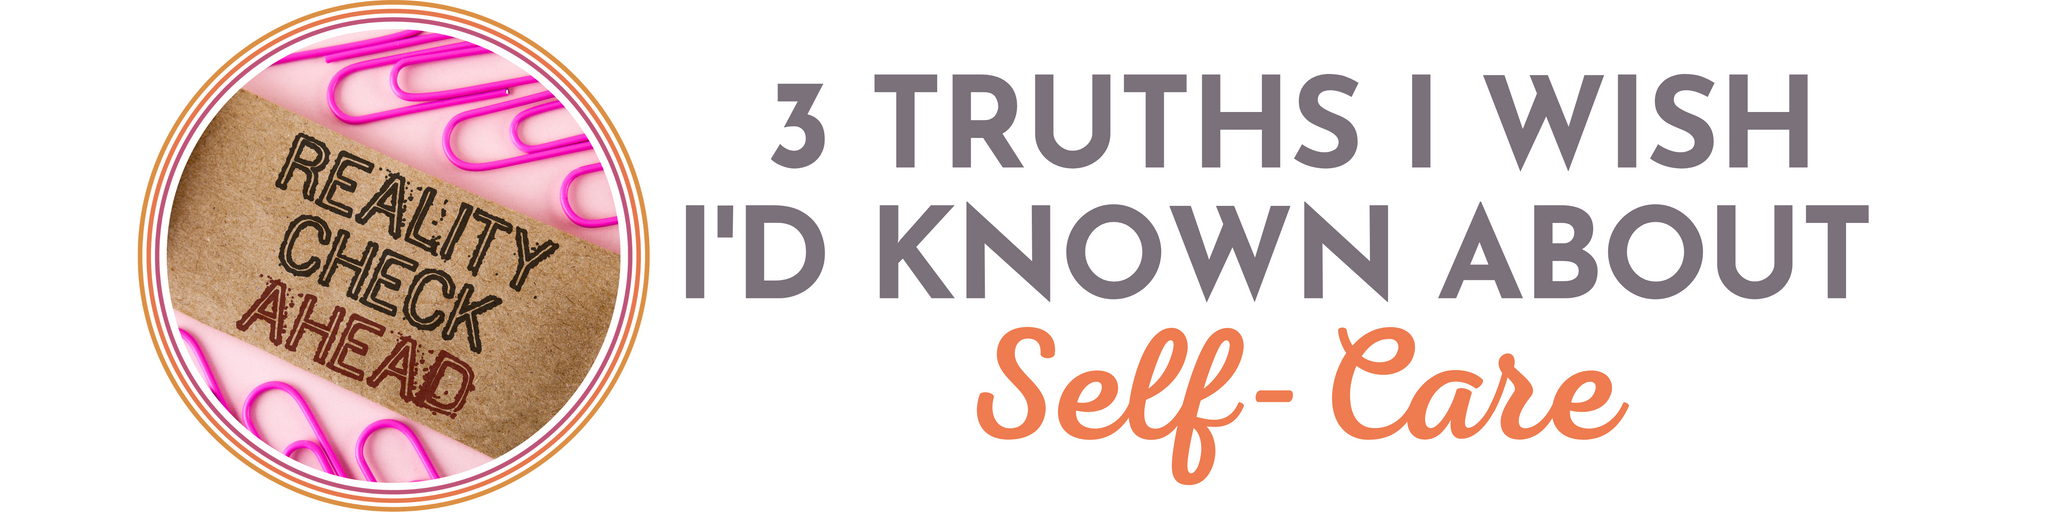 CRYSTAL MCLAIN CREATIVE 3 TRUTHS I WISH I'D KNOWN ABOUT SELF CARE BLOG